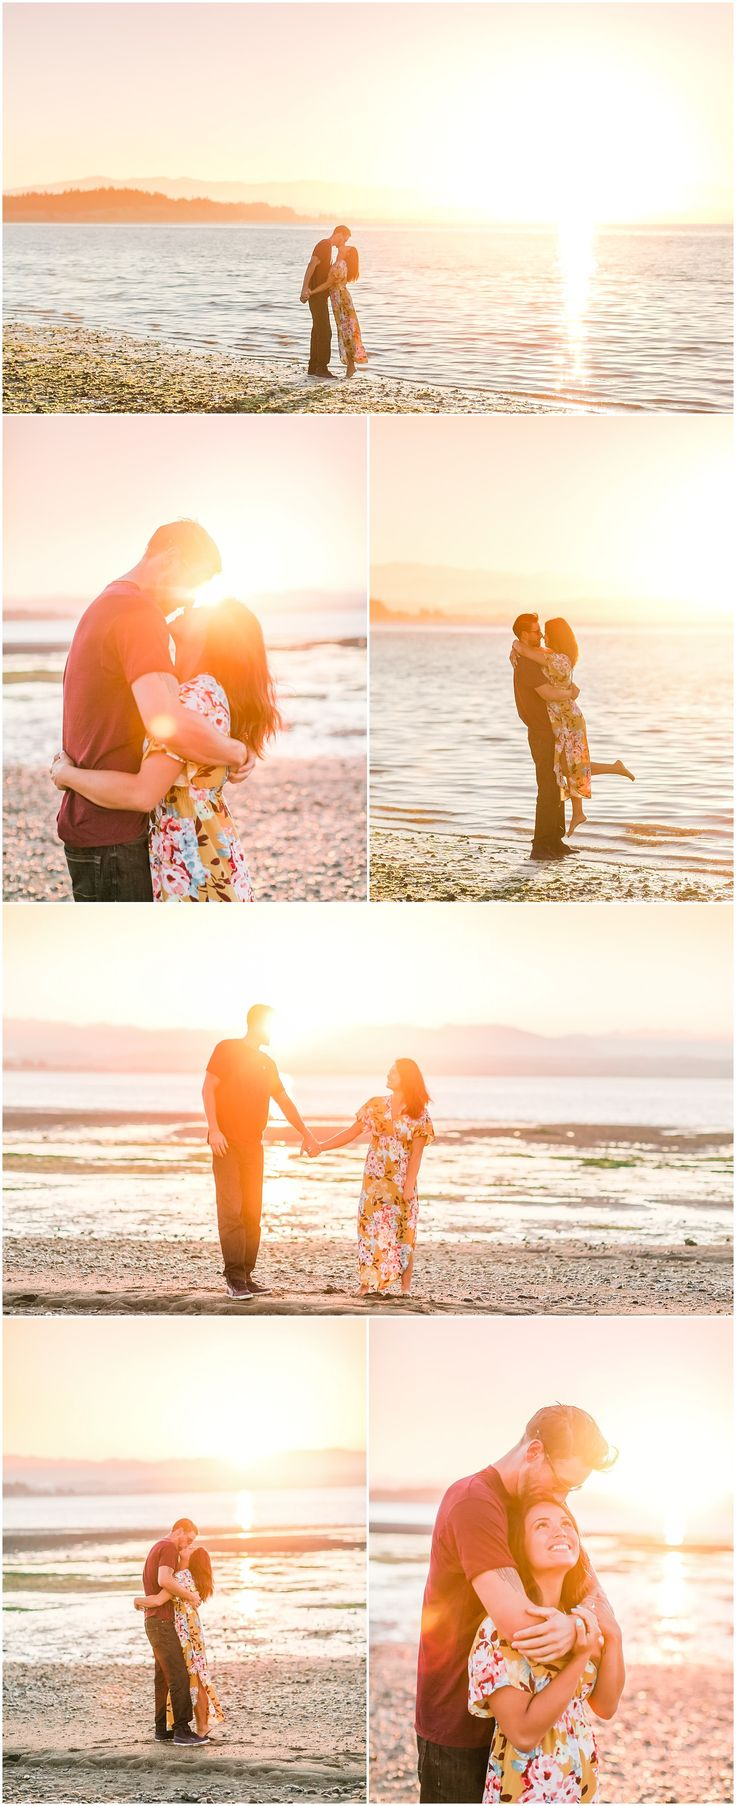 Sunrise engagement session at Iverson Beach in Camano Island, Washington. Camano Island Engagement. Iverson Beach Engagement Session. Sunrise PNW Engagement Session. Sunrise Engagement Session. Photos by Rachel Howerton Photography.